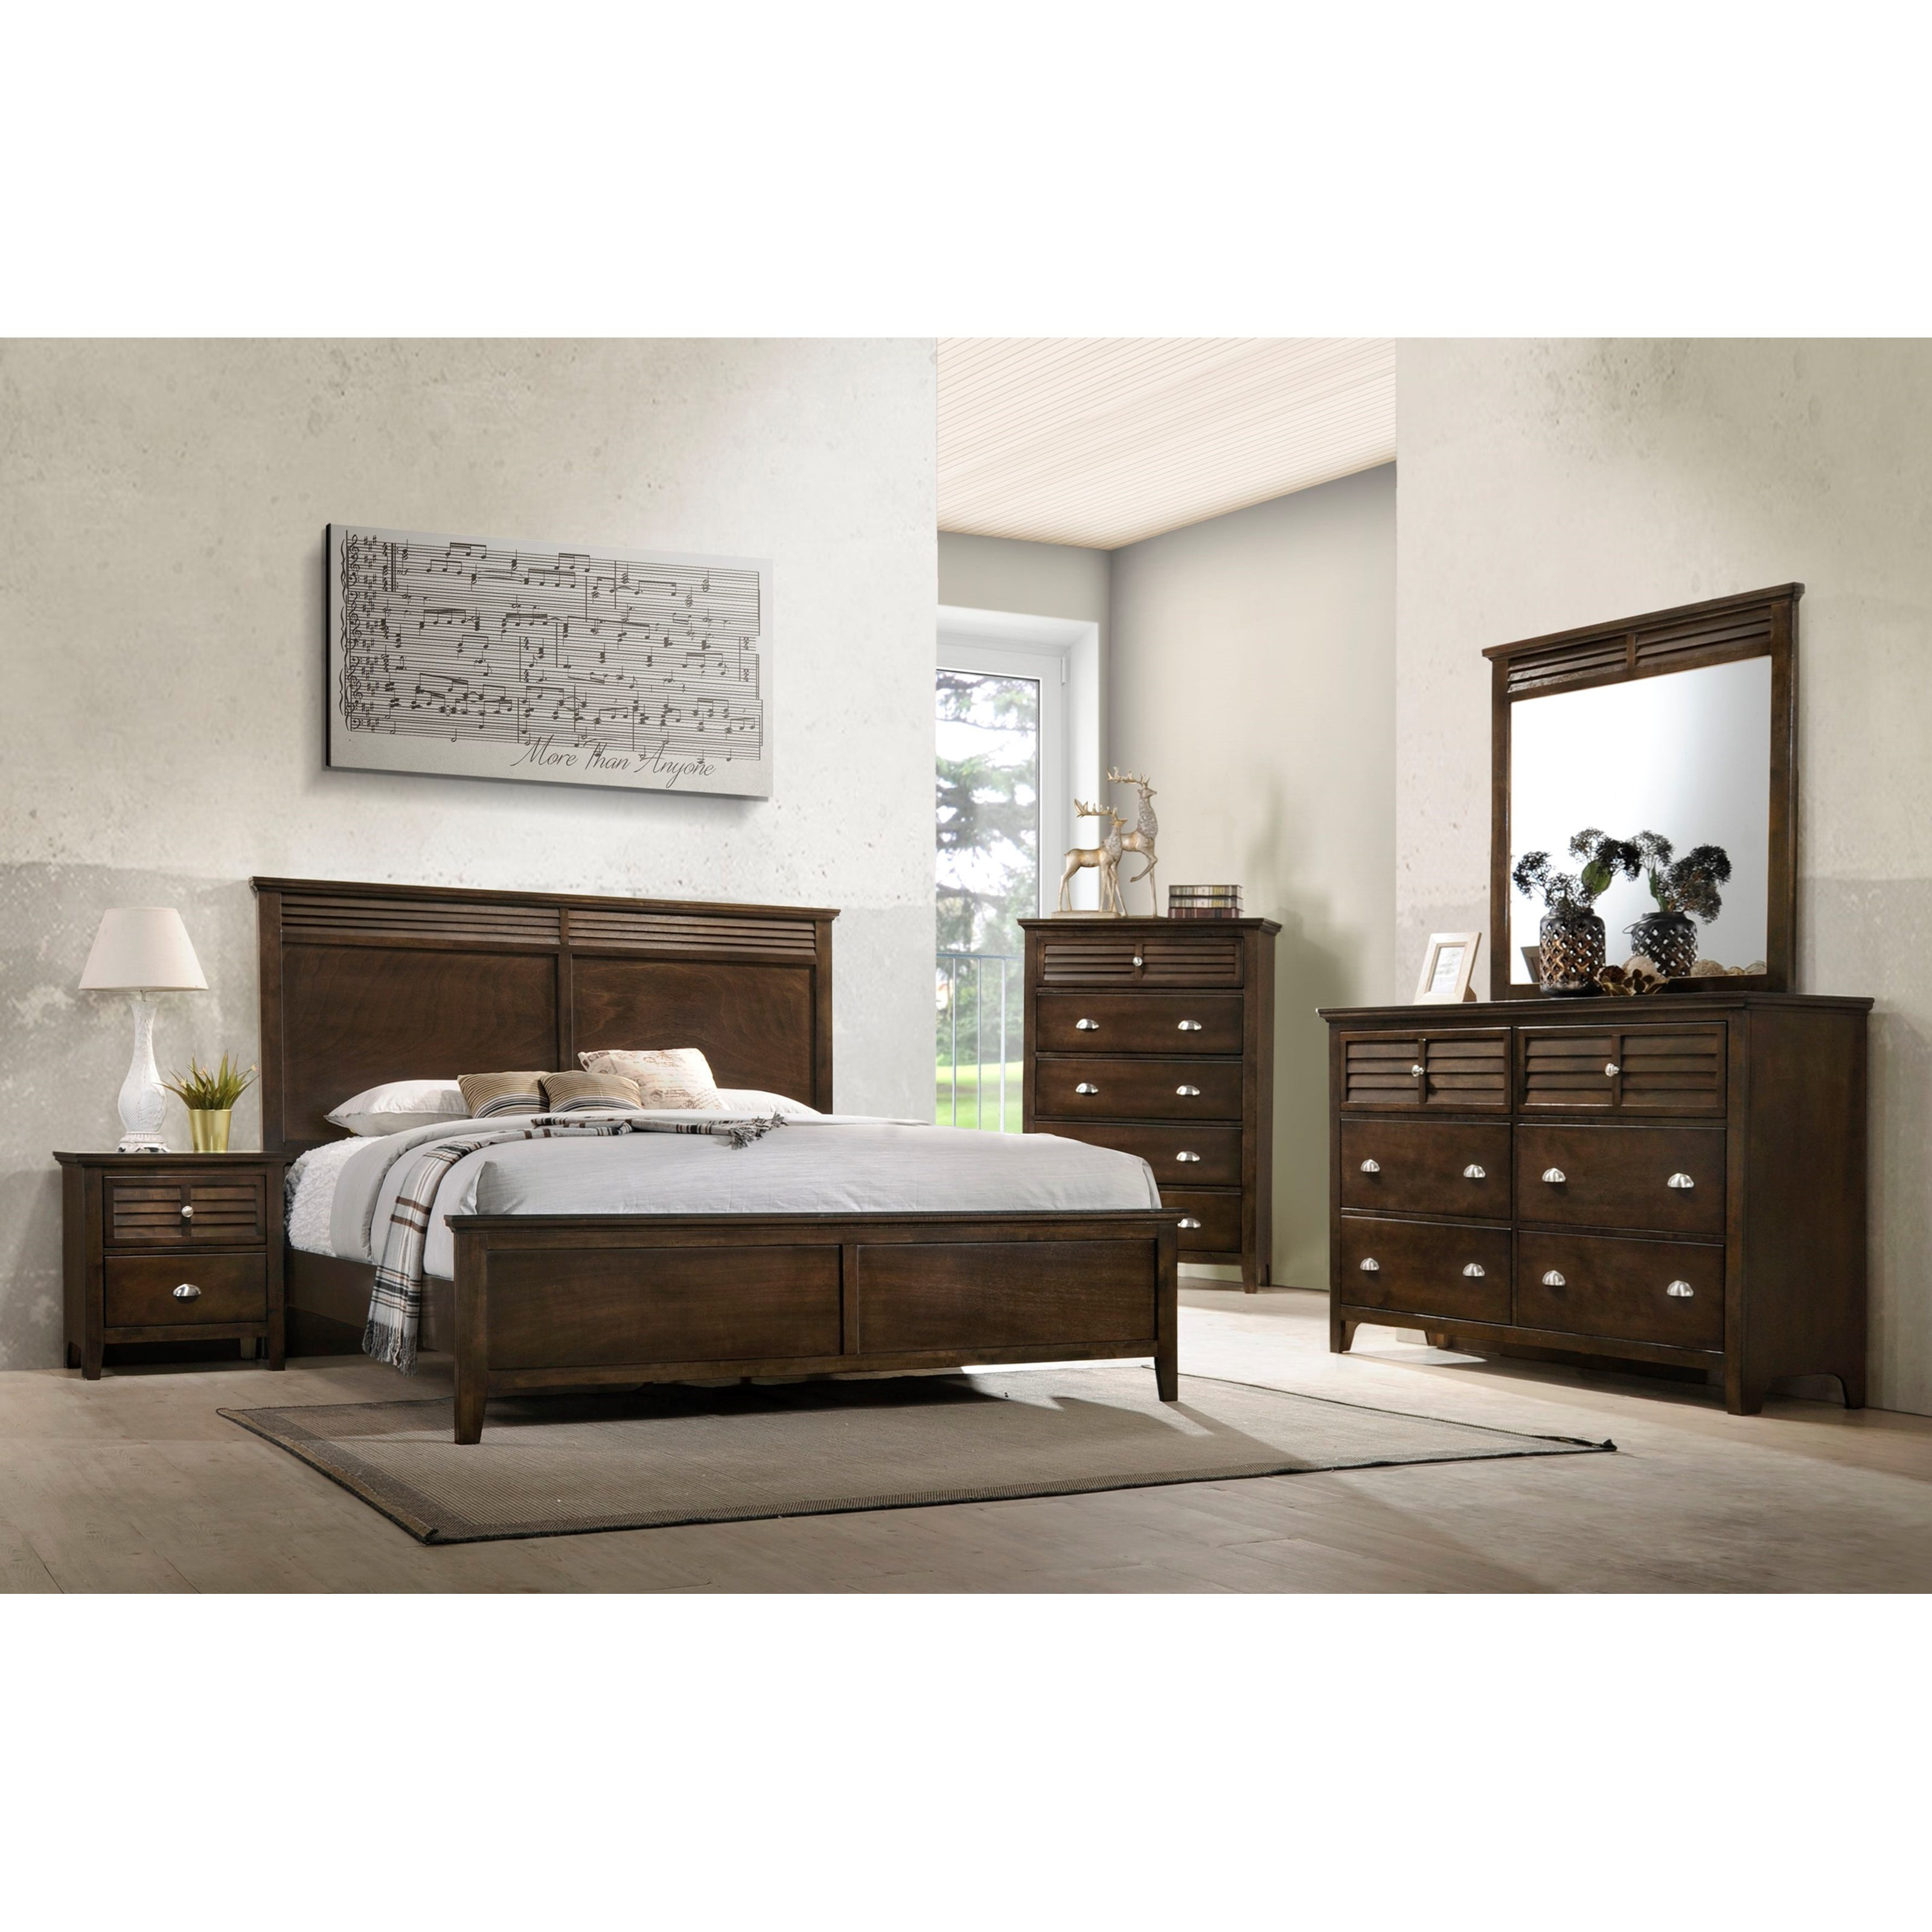 Furniture Fair North Carolina: Lifestyle C7313 Transitional Queen Bed With Tall Headboard